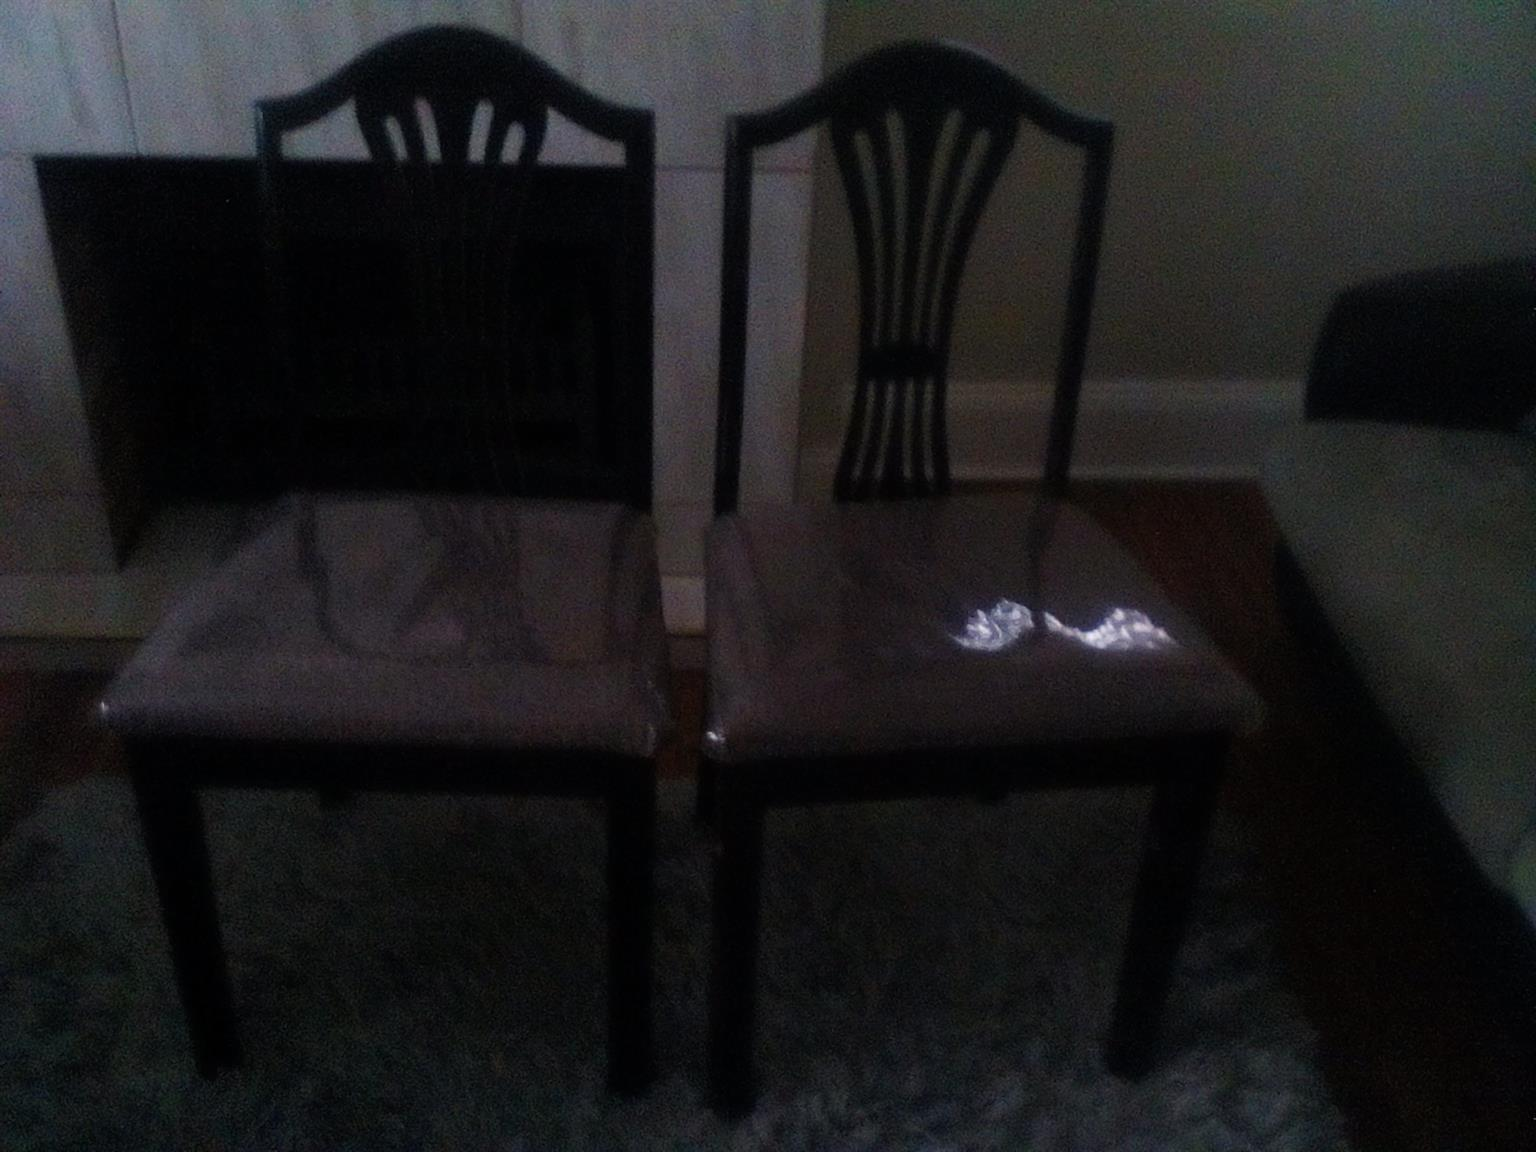 Two chairs R150 for both